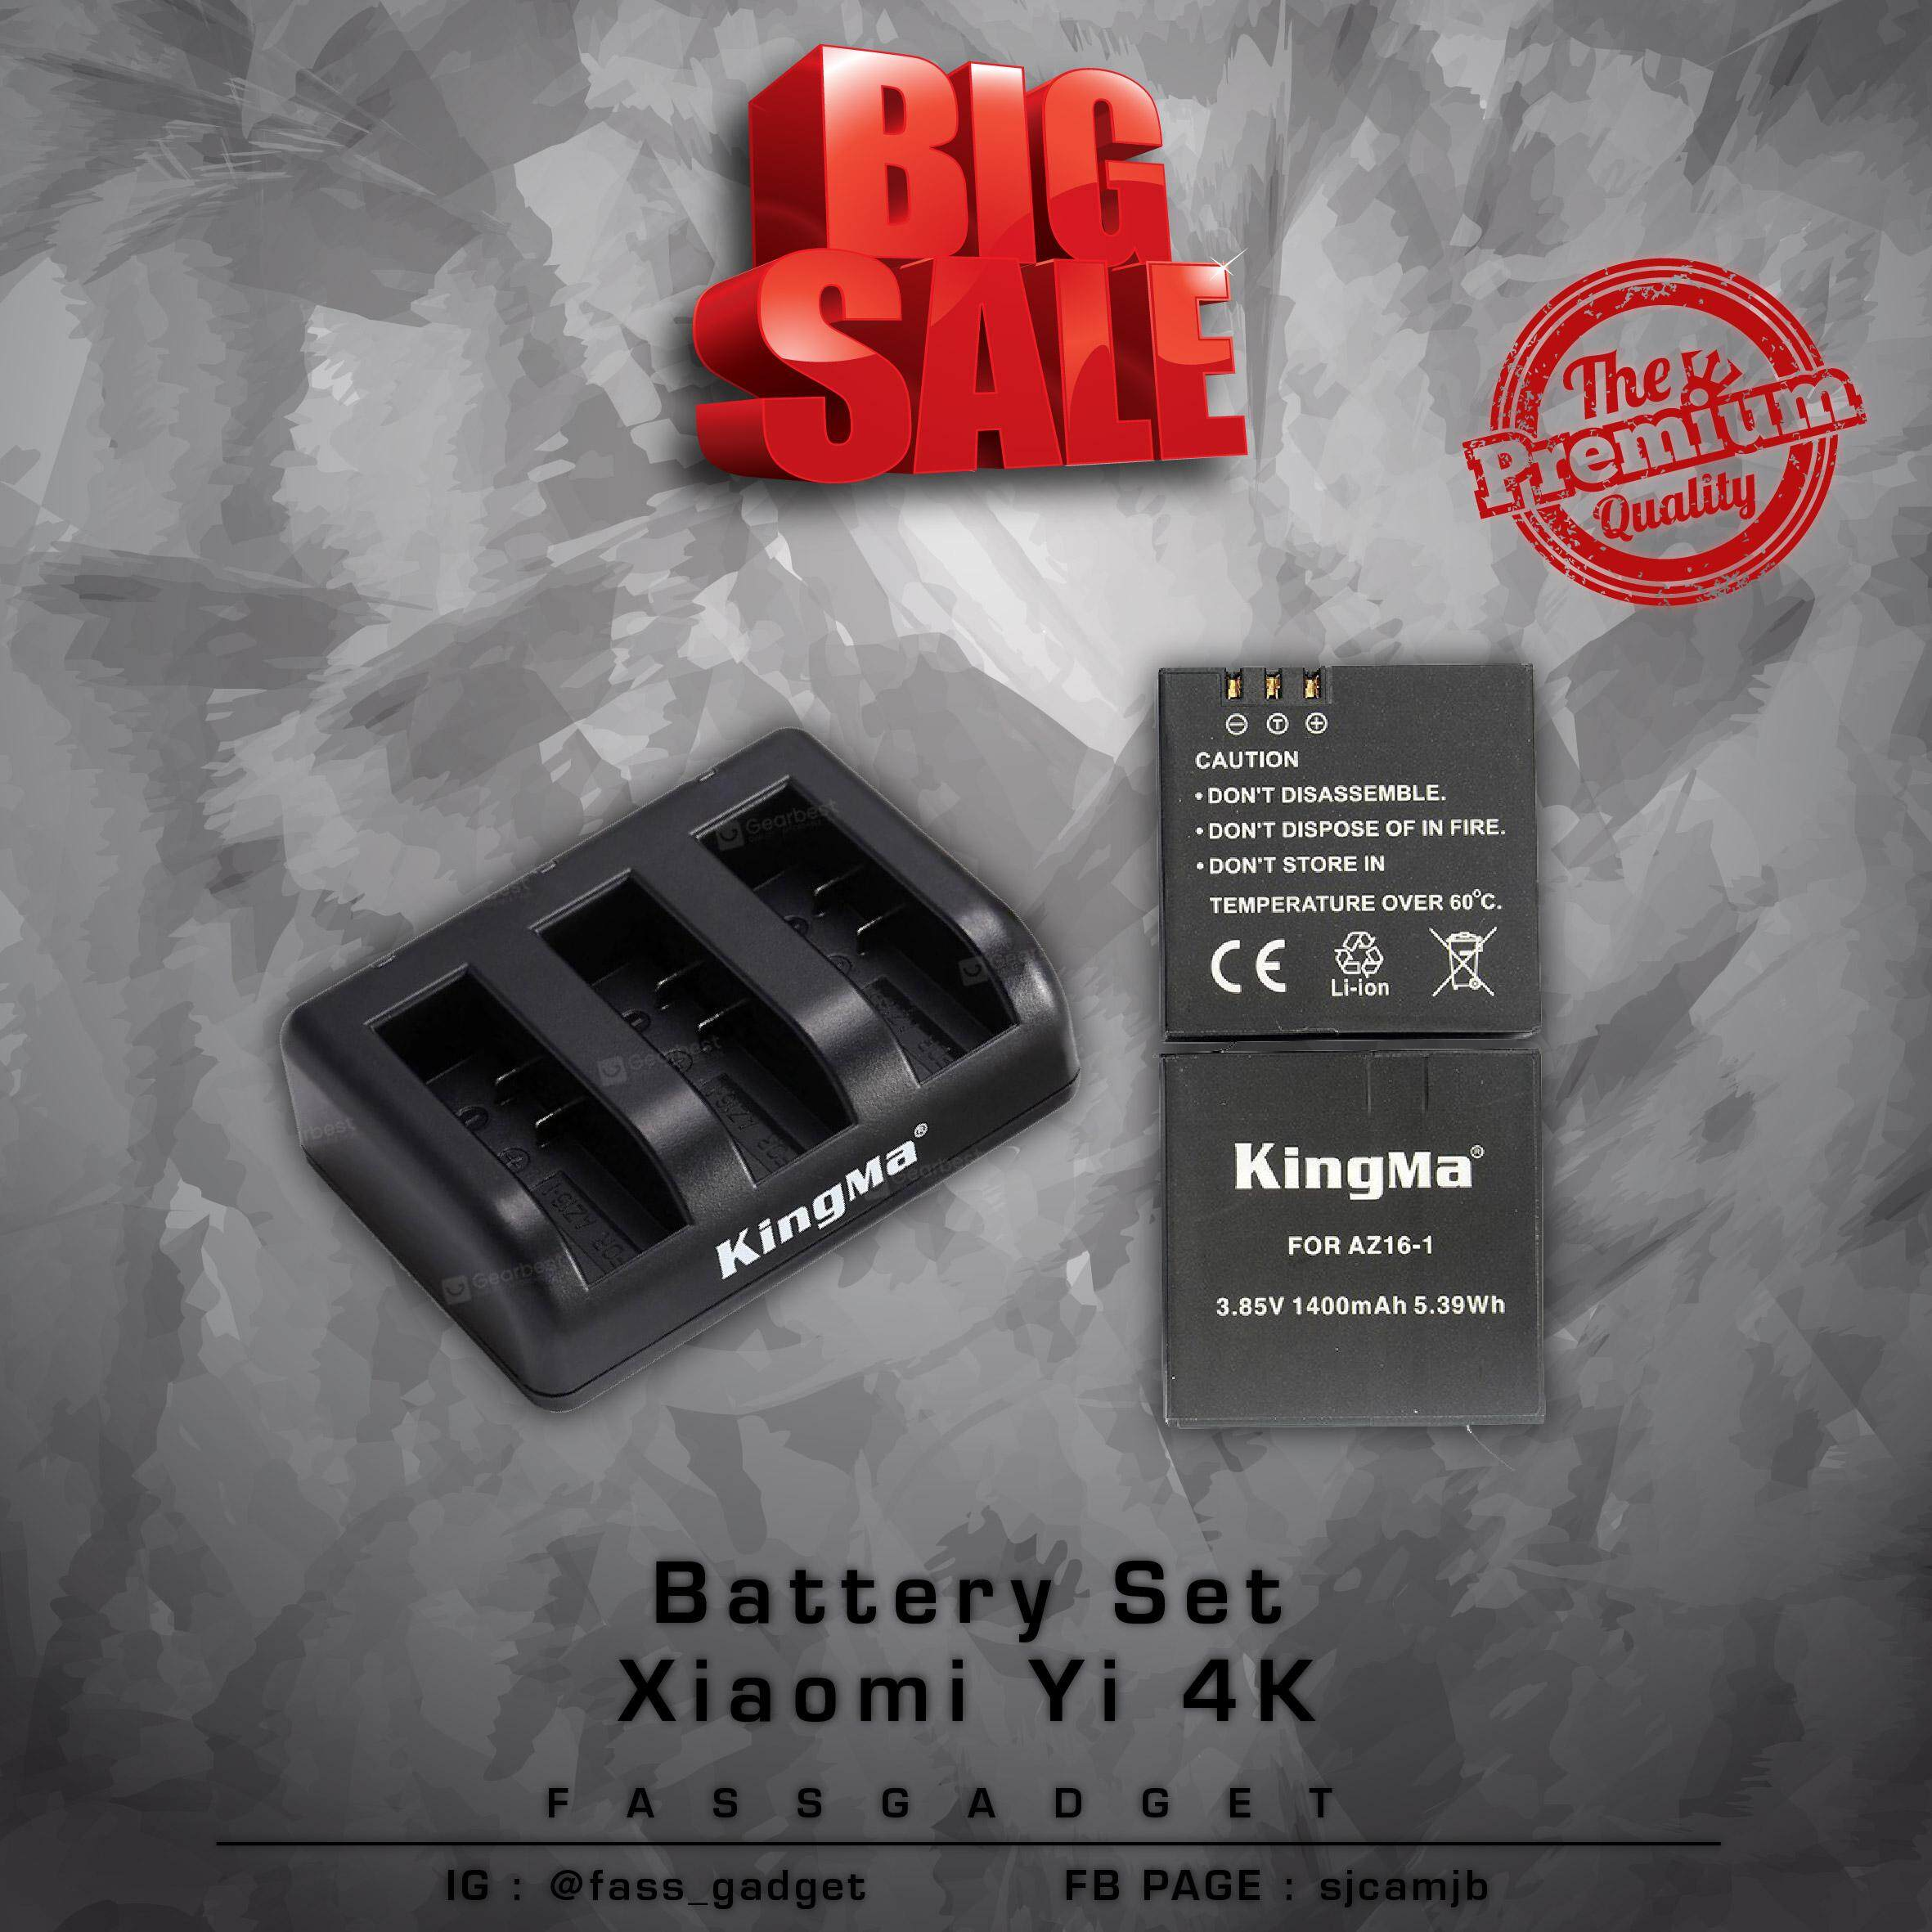 Kingma Batteries & Chargers for the Best Prices in Malaysia